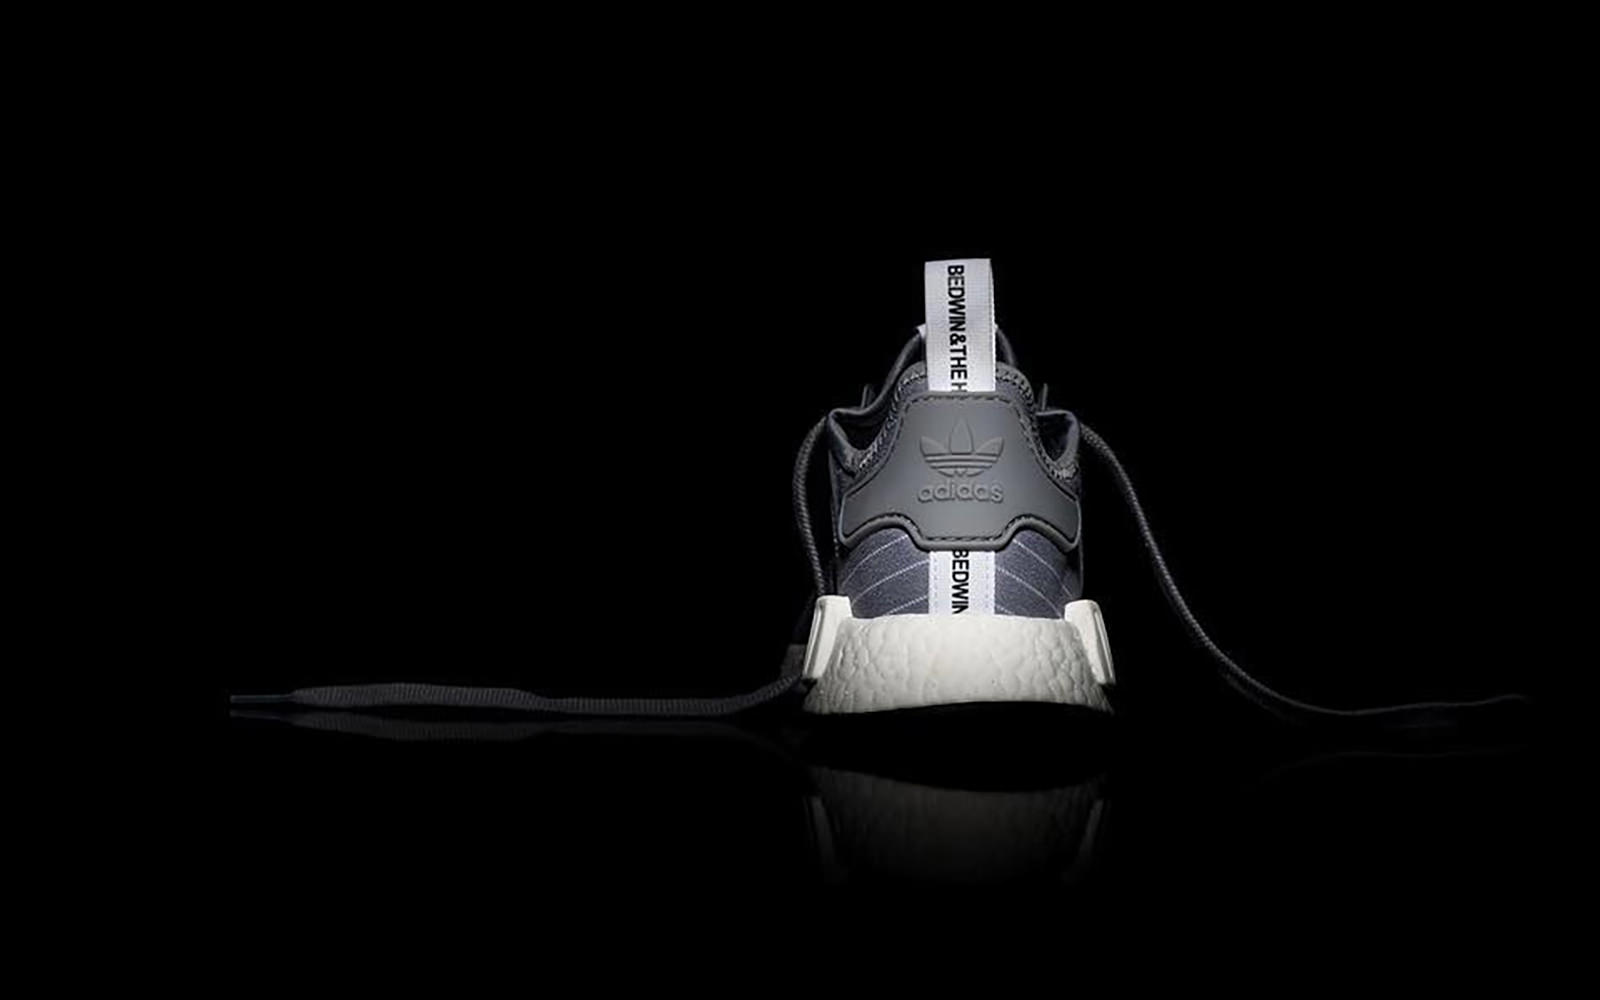 57d115464c75f0326f63aa17_bedwin-and-the-heartbreakers-adidas-nmd-r1-01